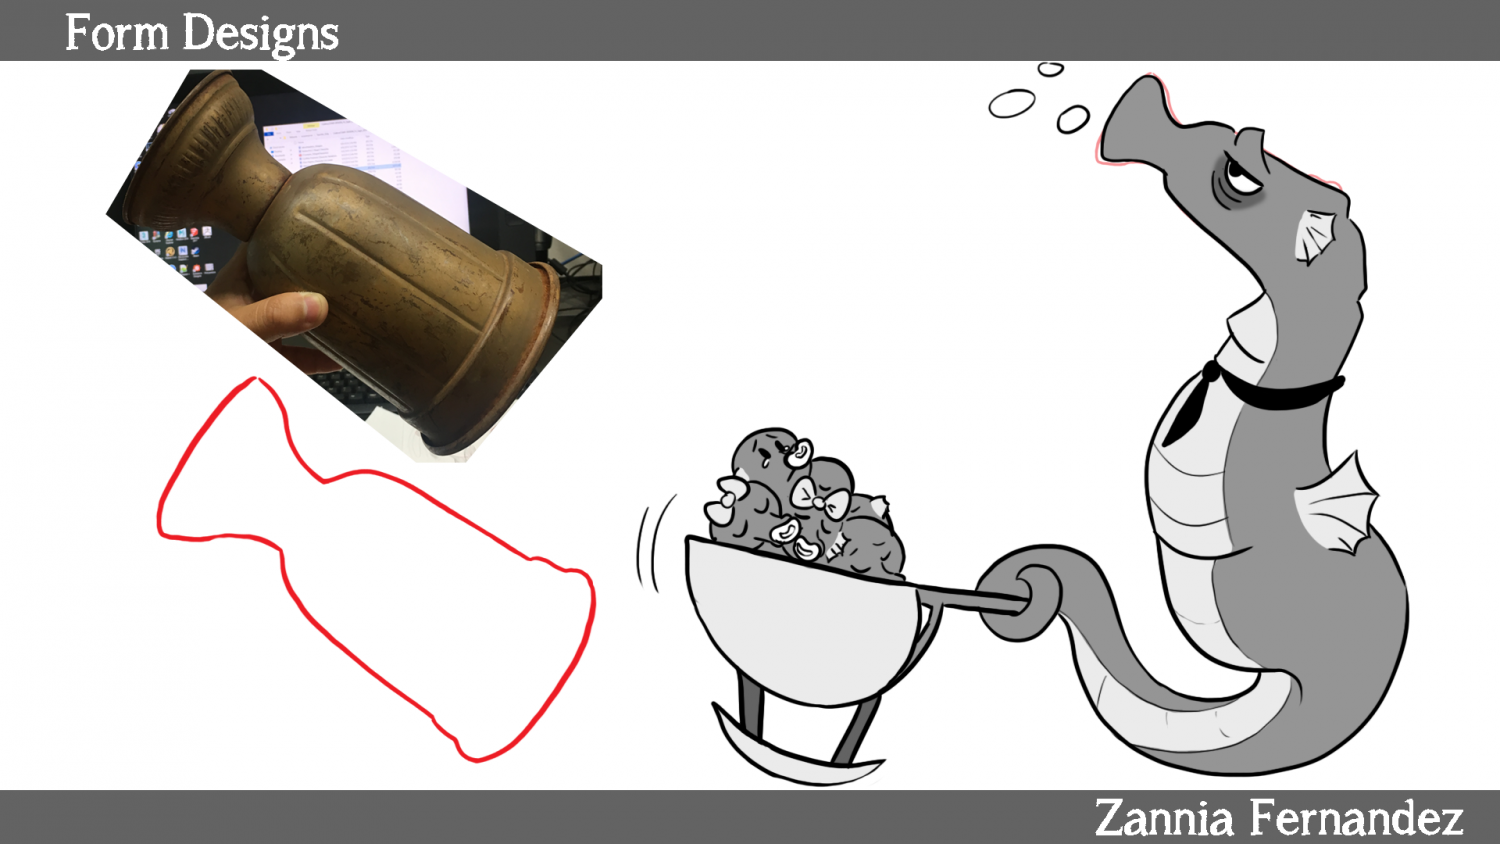 An image of an object is outlined and then a character is made from that outline.